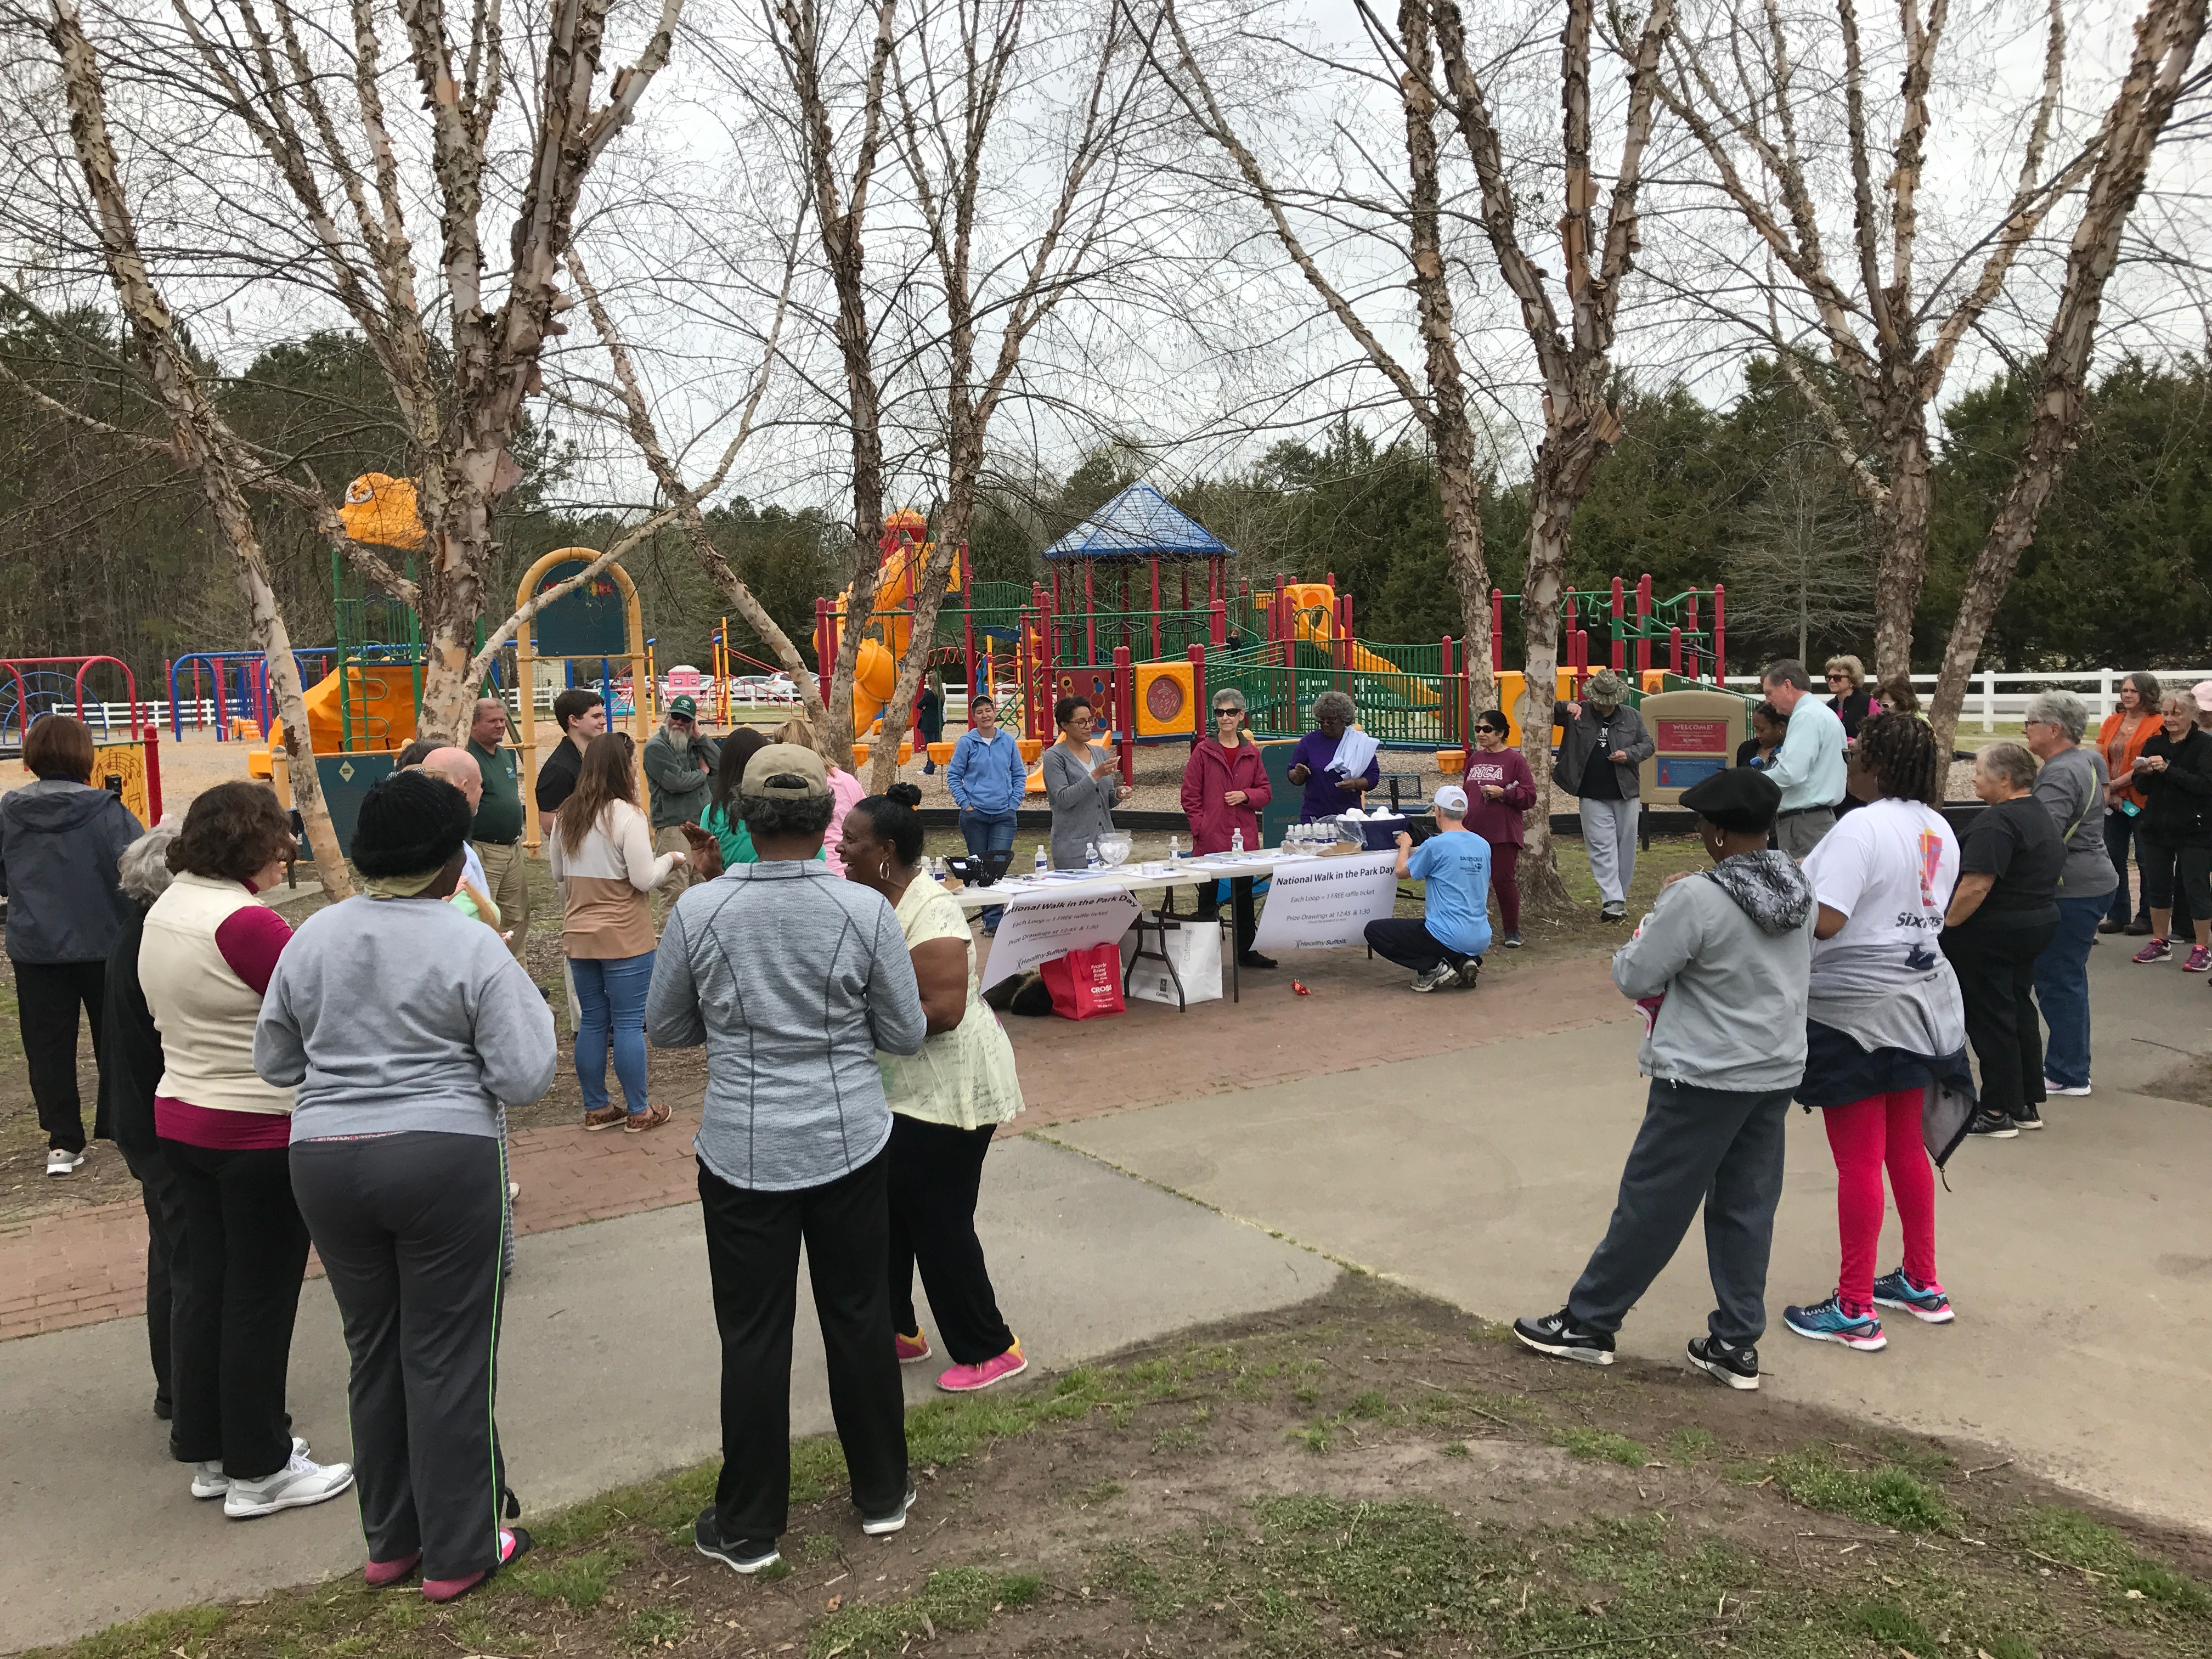 National Walk in the Park Day